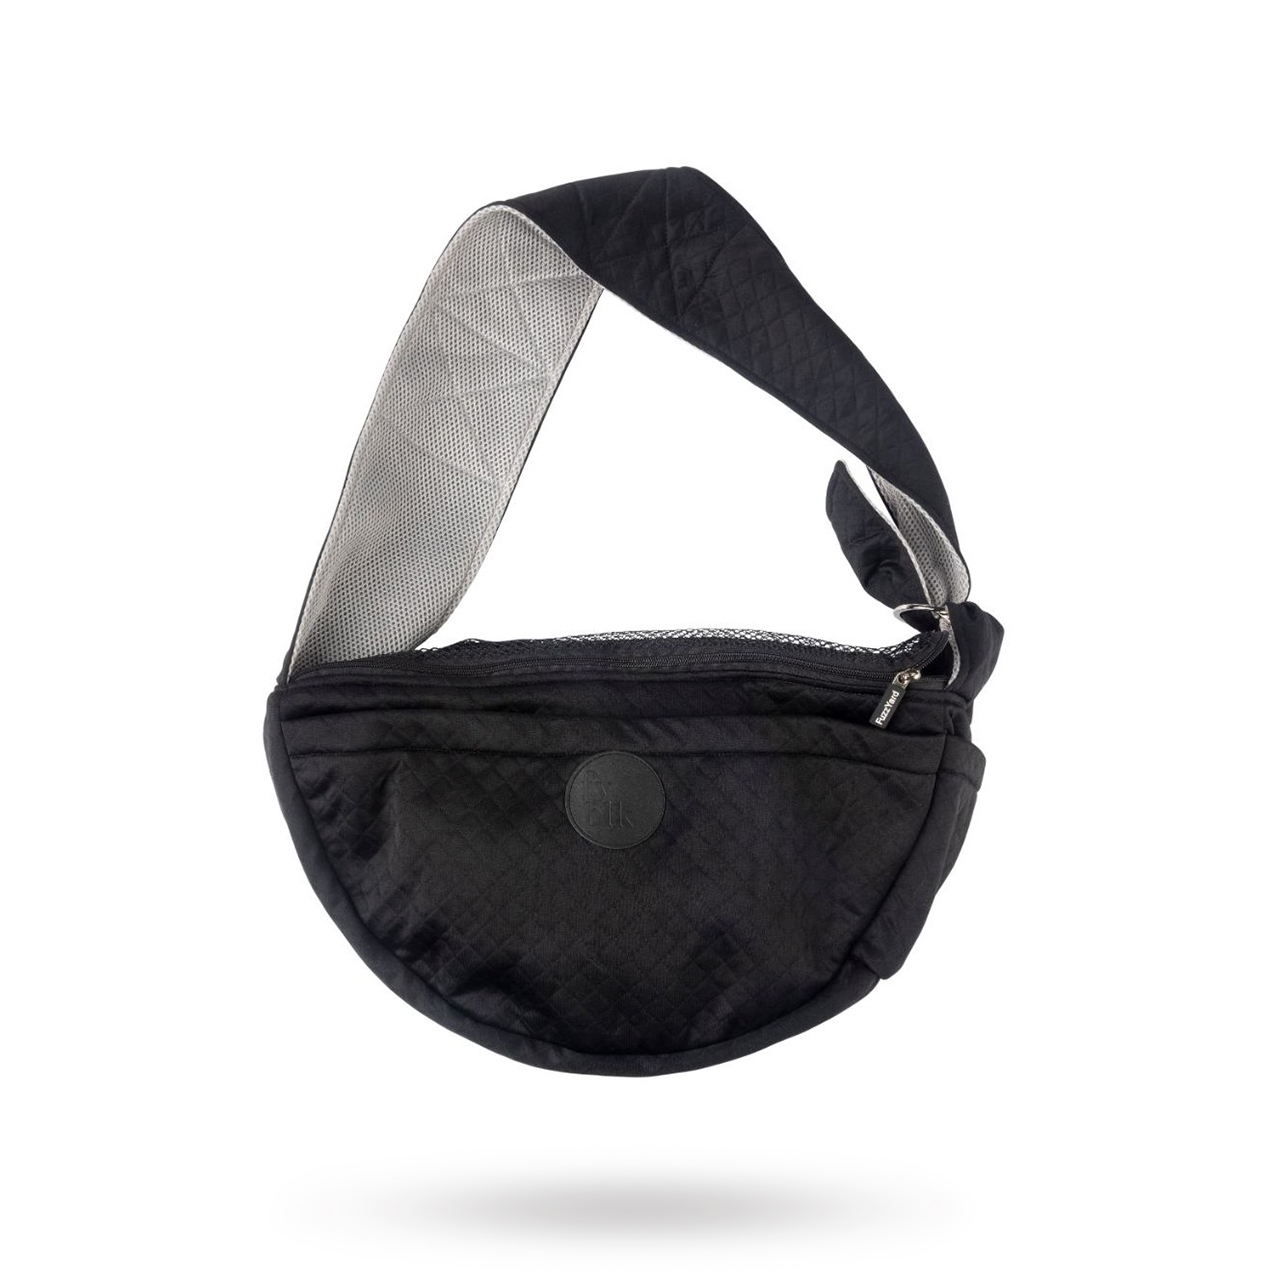 Carry Bag - Svart Hundväska